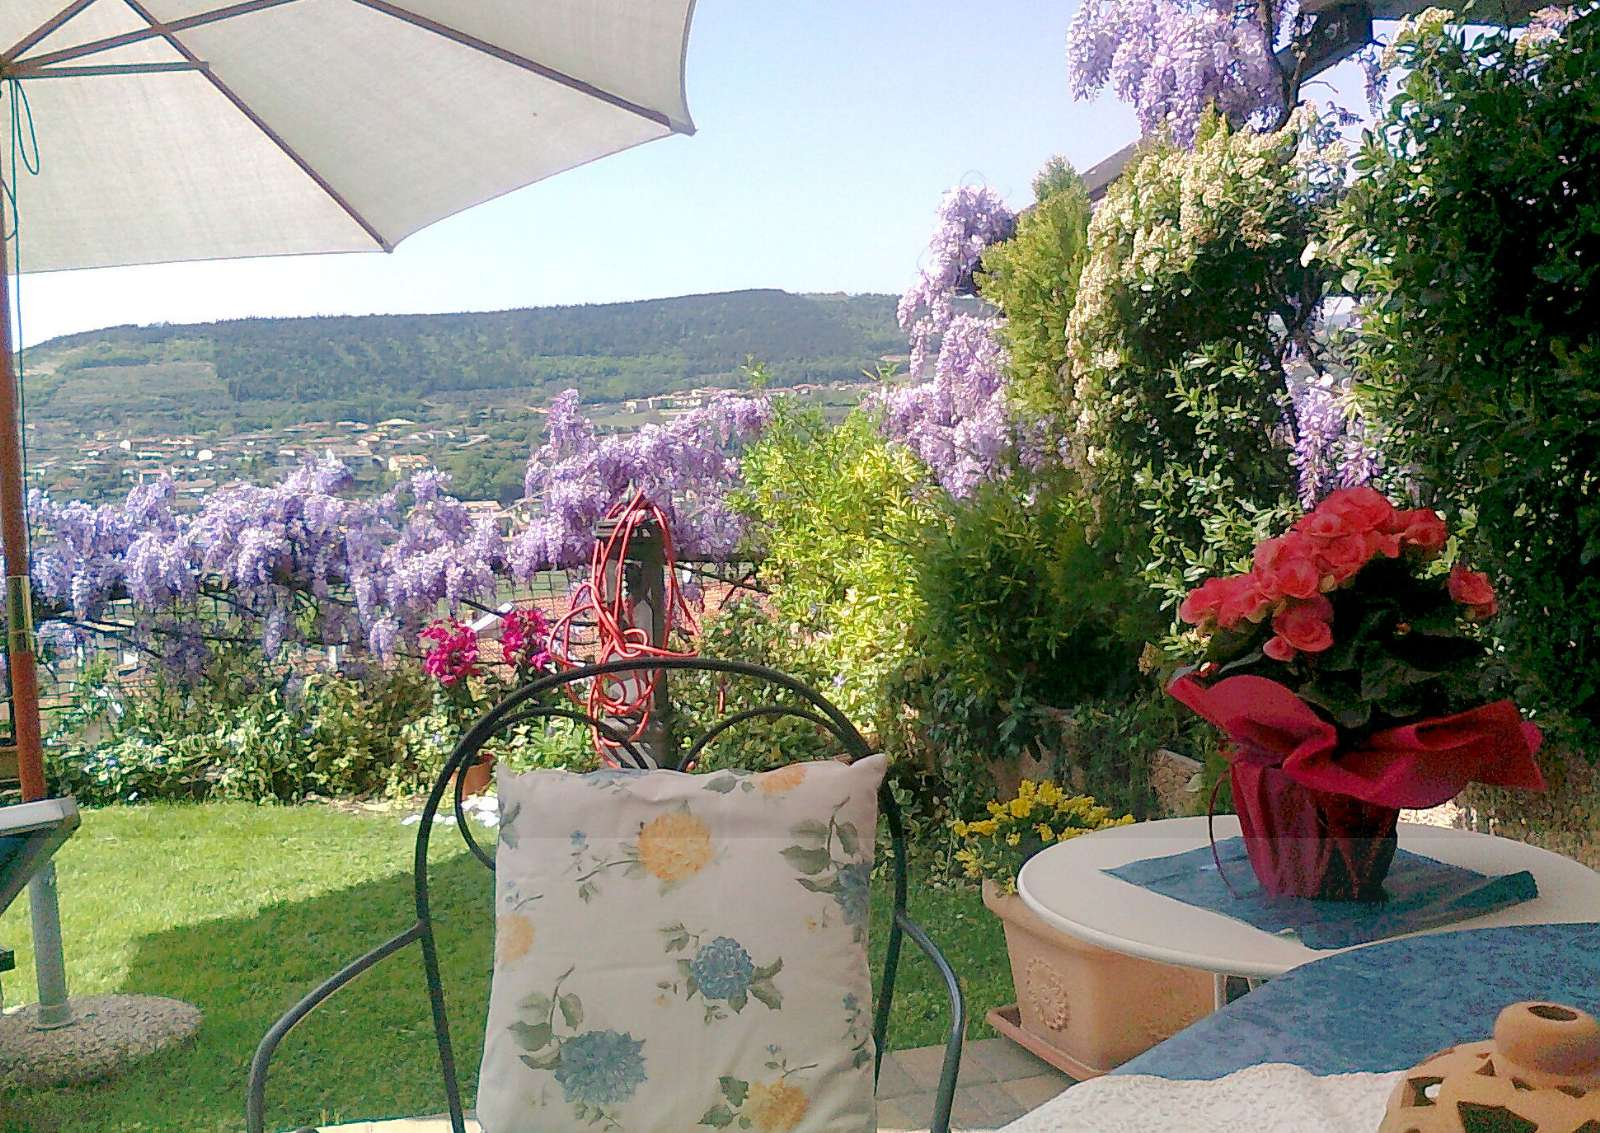 The terrace and garden overlooking the vineyards and the town Negrar